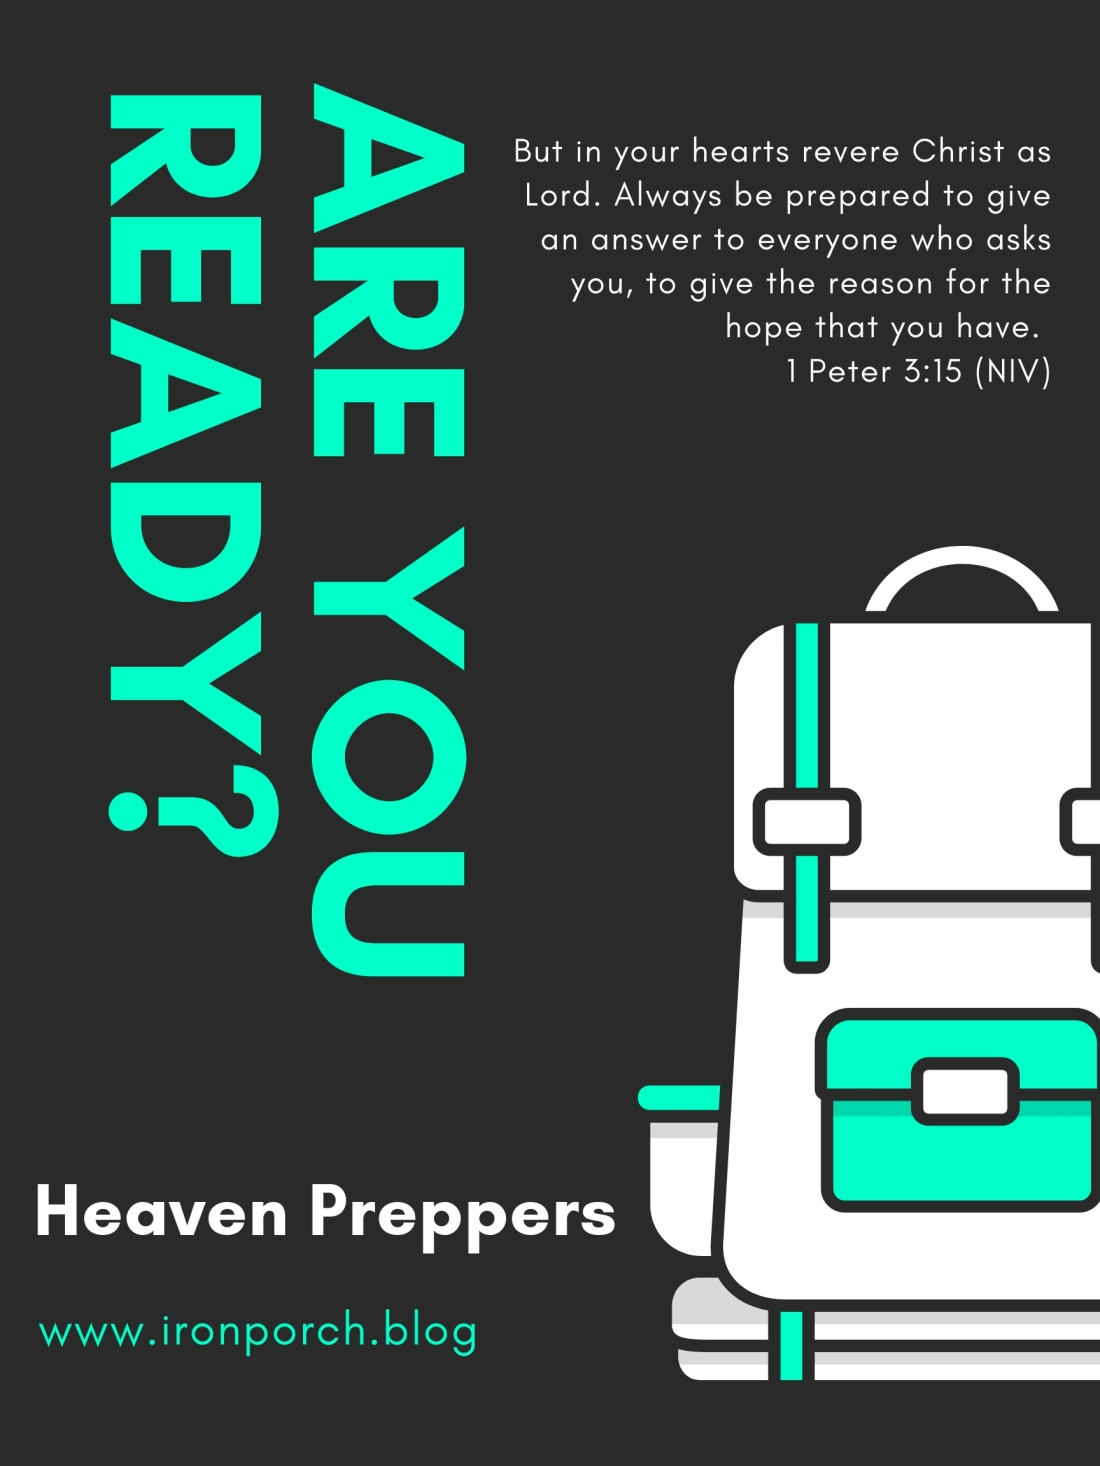 Preppers for Heaven